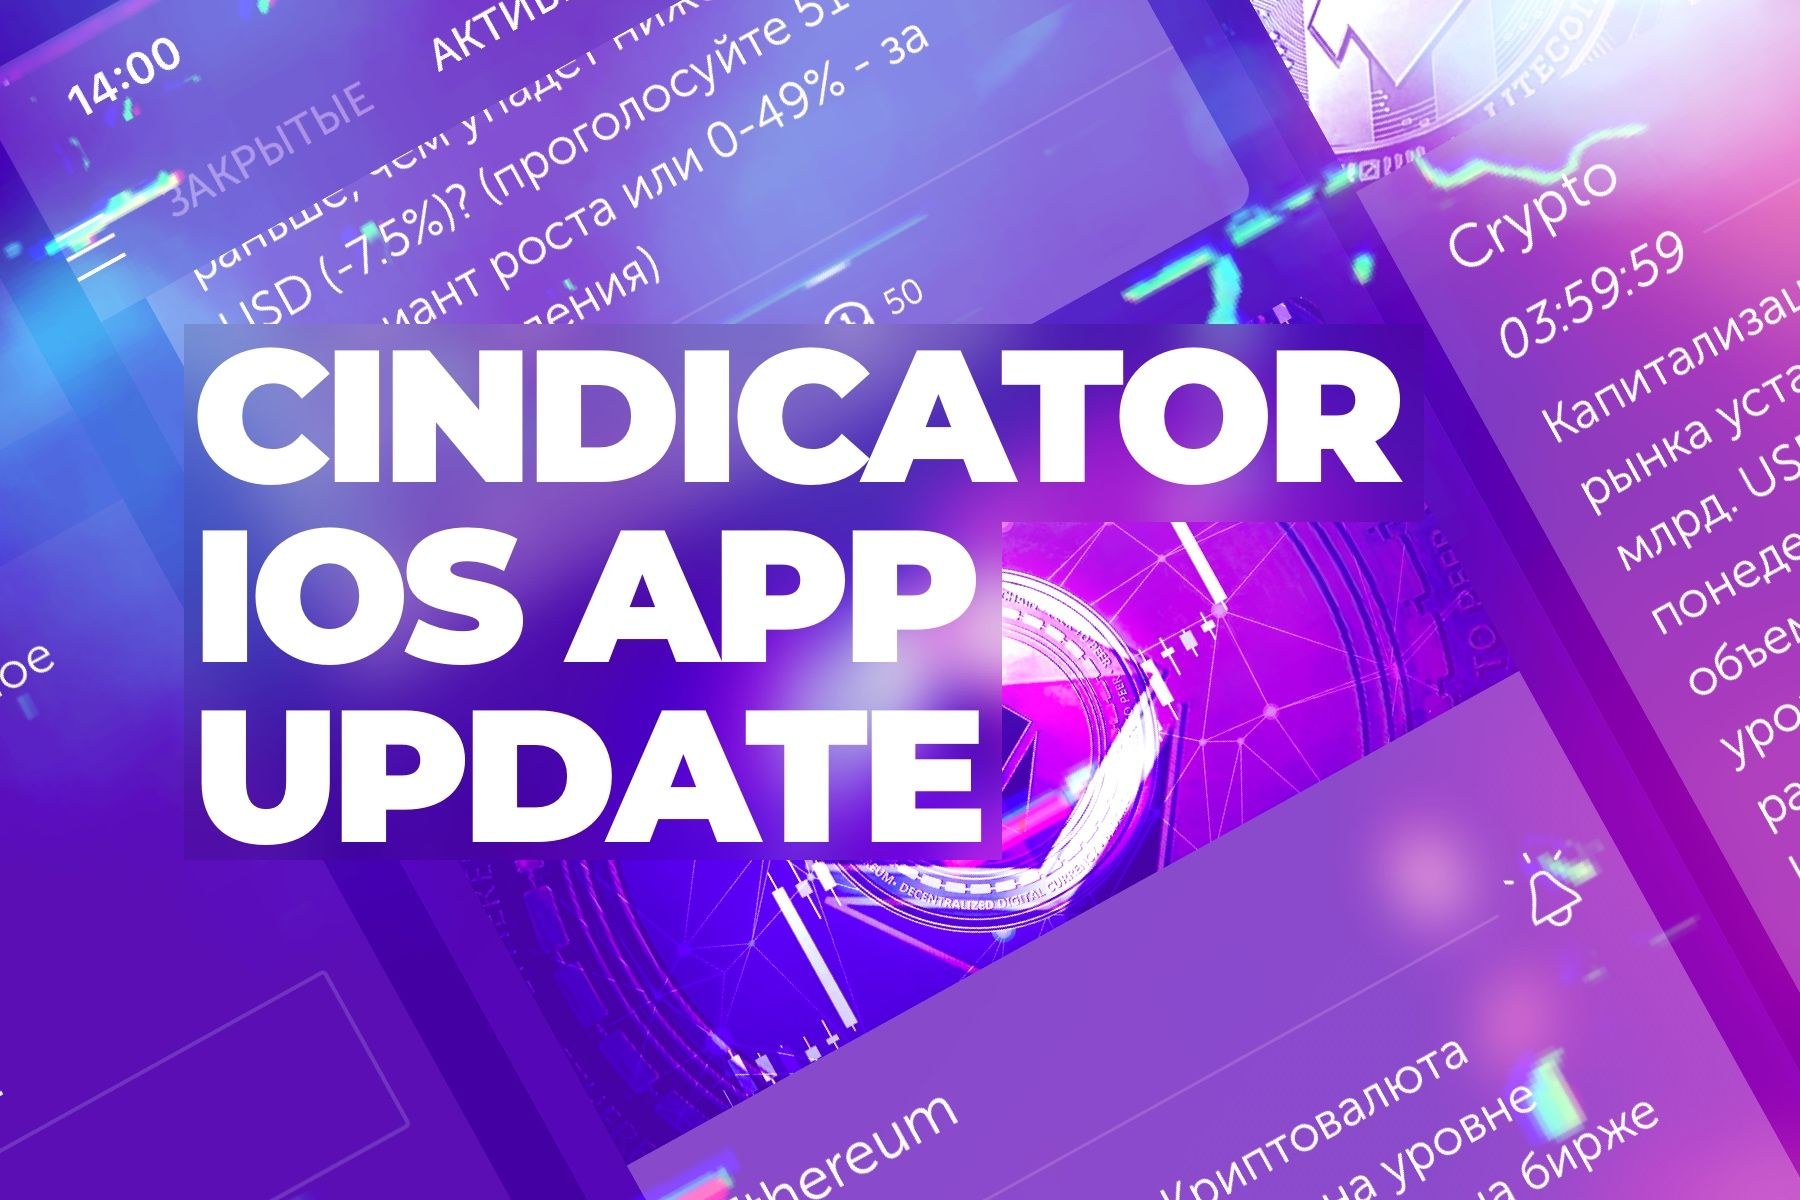 Cindicator iOS app update: reading and answering questions is easier than ever